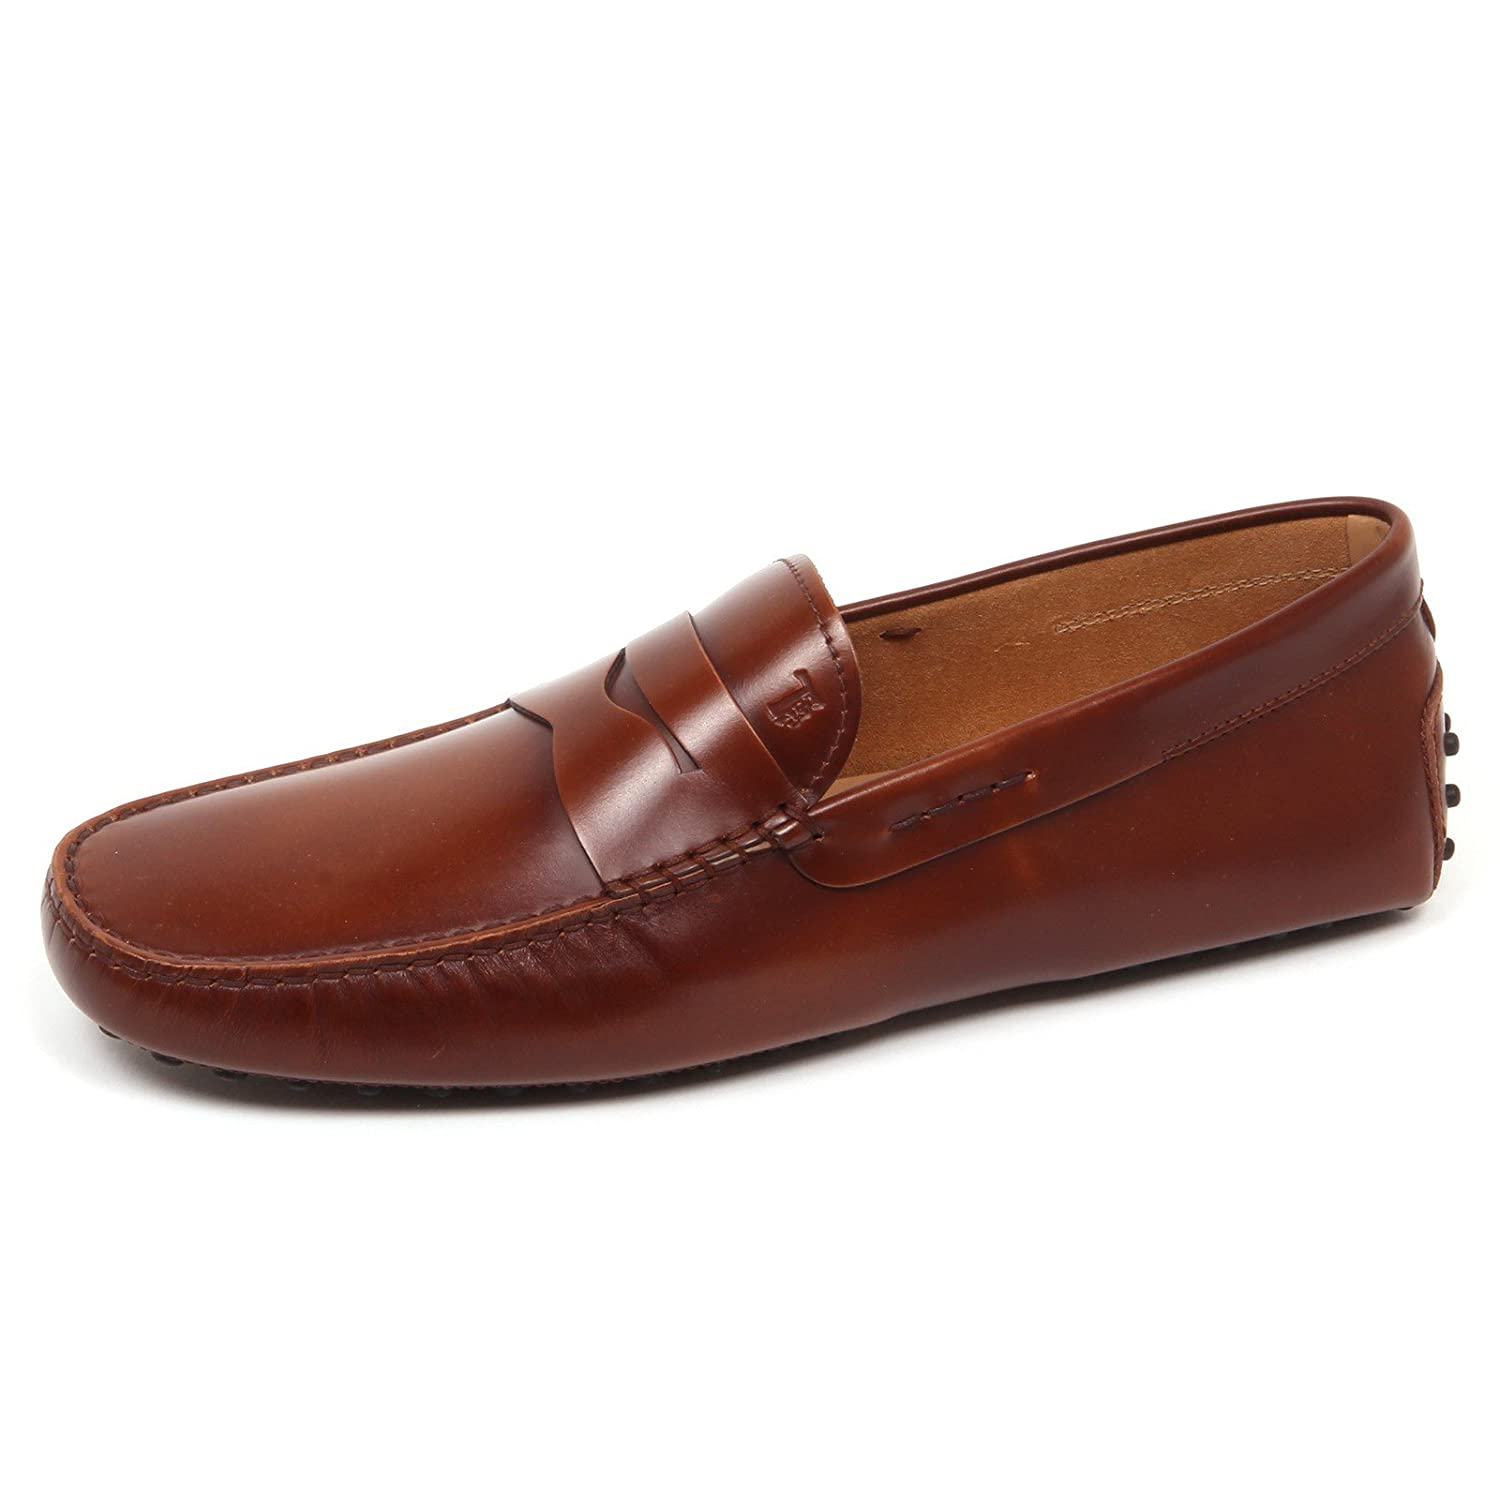 E3648 Mocassino uomo Brown Tod's Scarpe Shoe Loafer Man Marrone